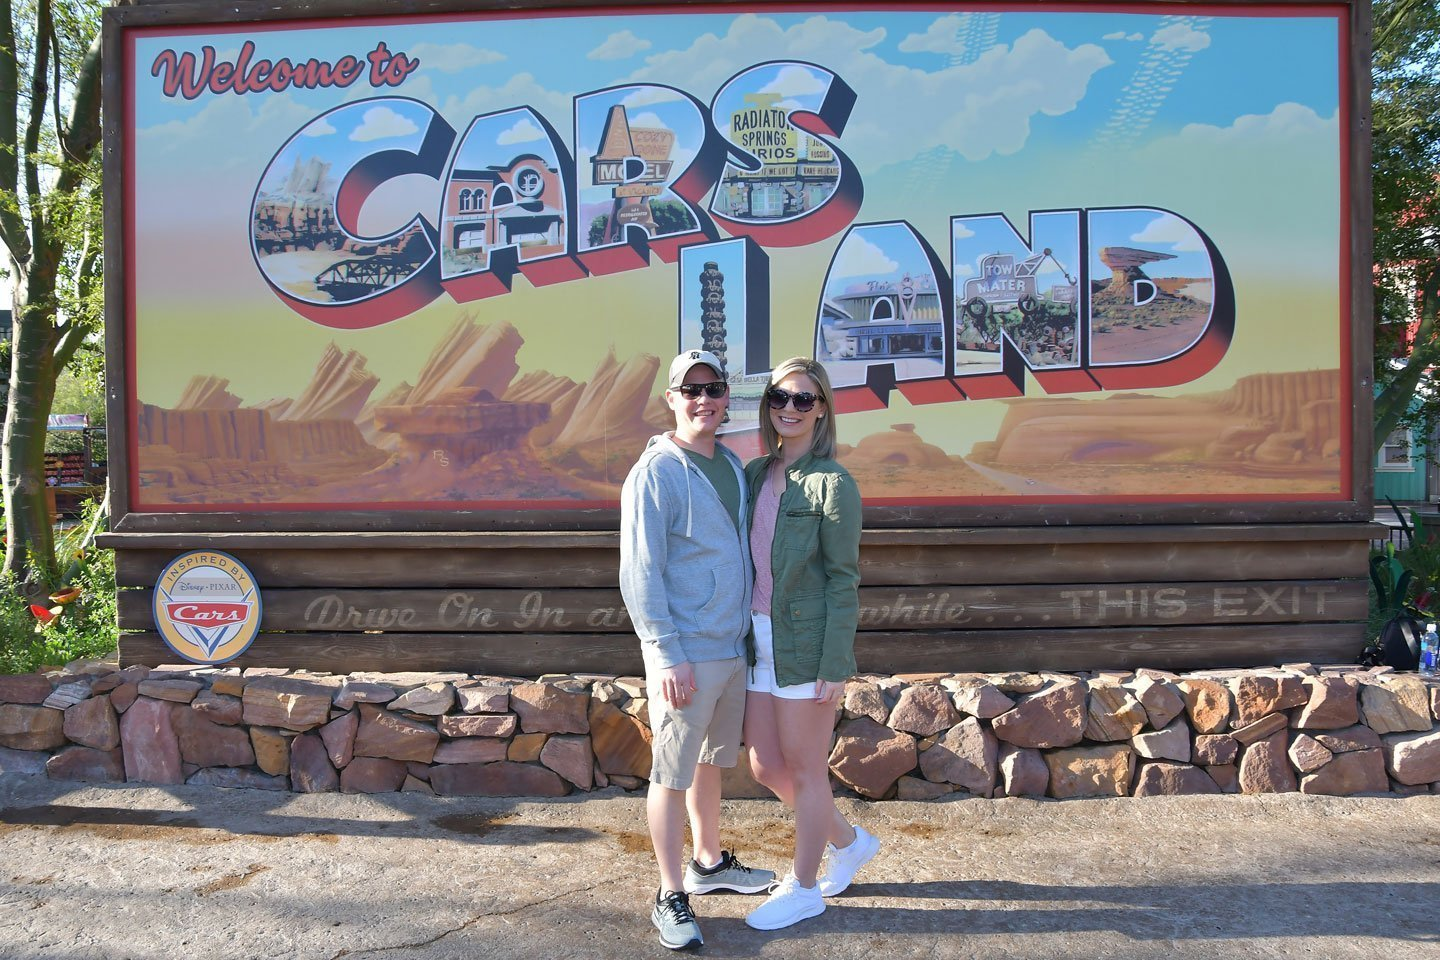 Welcome to Cars Land sign at Disney California Adventure MaxPass photo